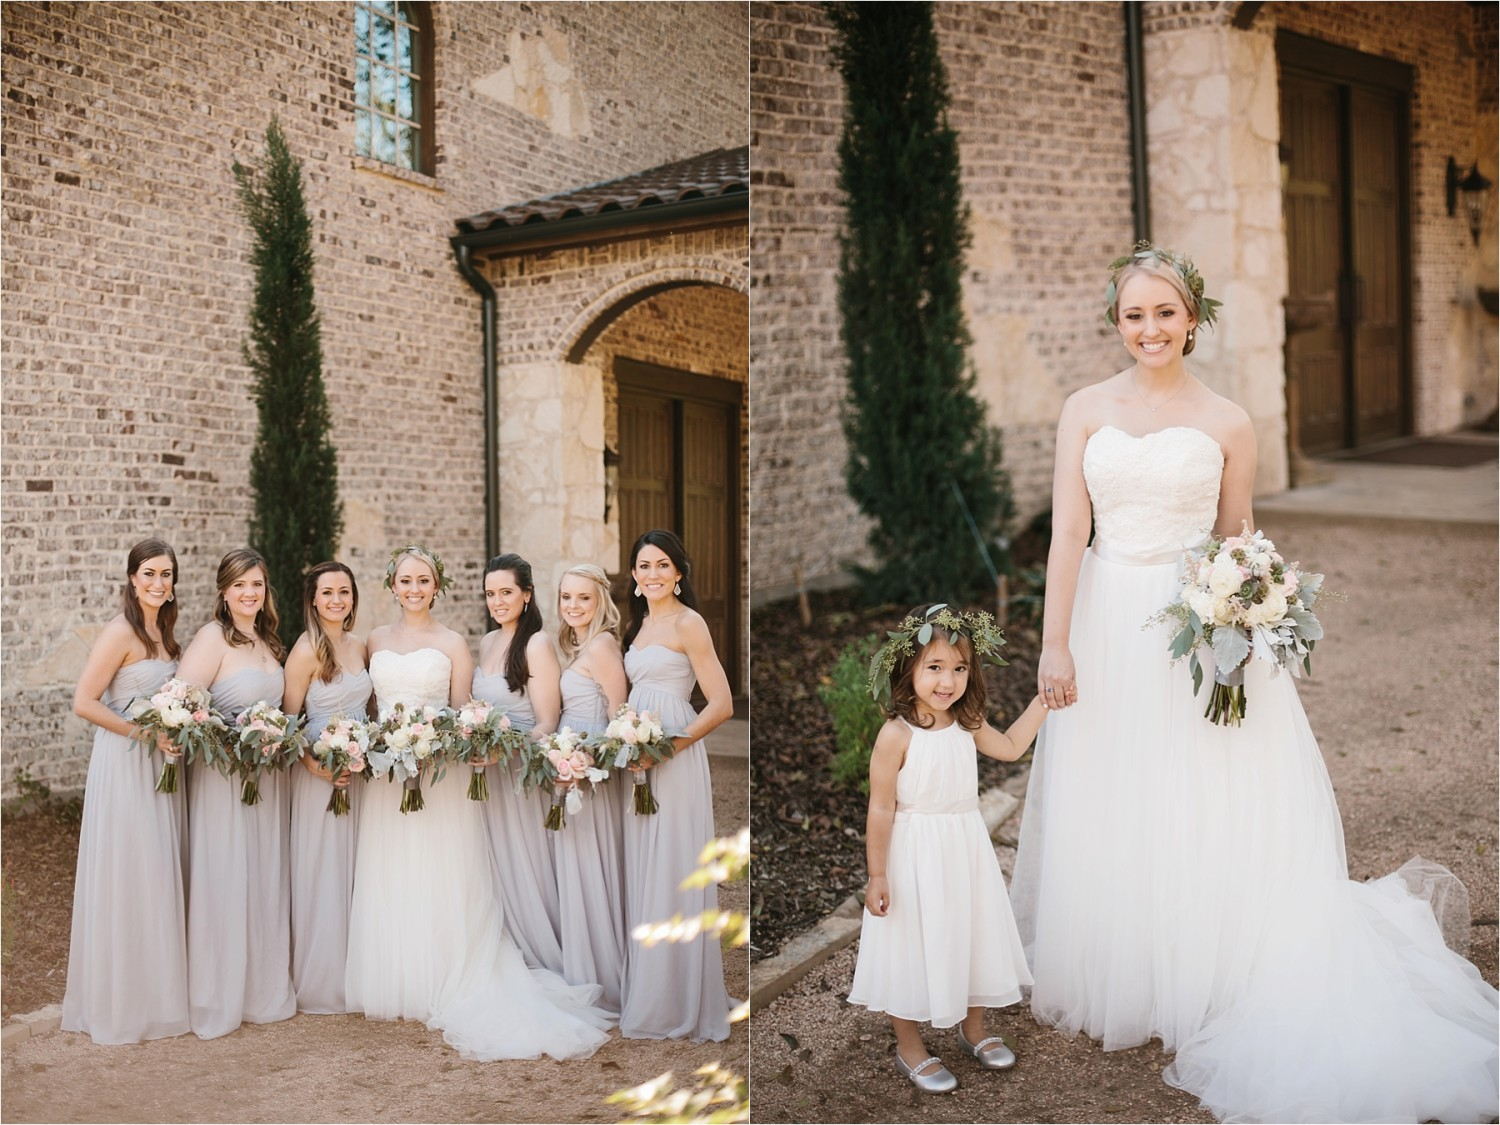 brad-lara-__-a-grey-and-blush-pink-intimate-wedding-at-hidden-waters-event-center-in-waxahachie-tx-by-north-texas-wedding-photographer-rachel-meagan-photography-_-019